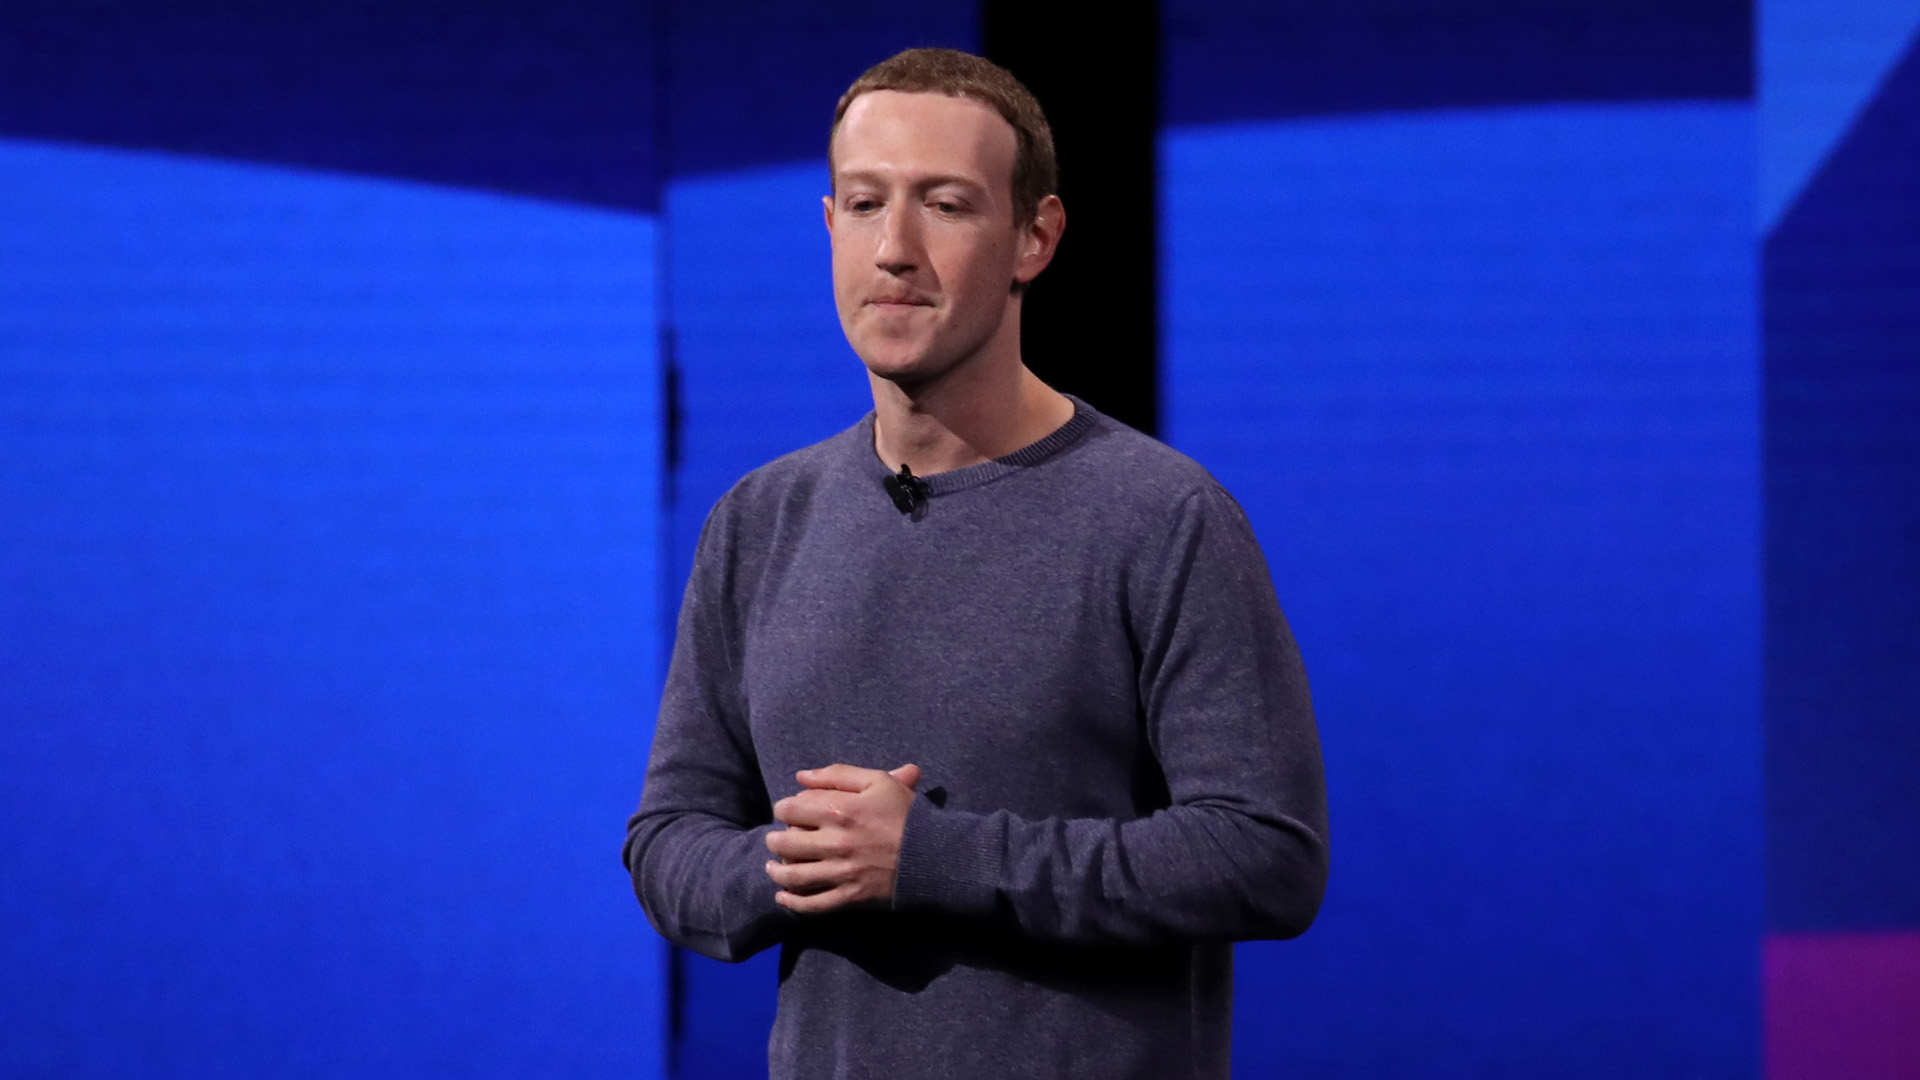 Facebook CEO Mark Zuckerberg speaks during the F8 Facebook Developers conference on April 30, 2019 in San Jose, California.(Credit: Justin Sullivan/Getty Images)